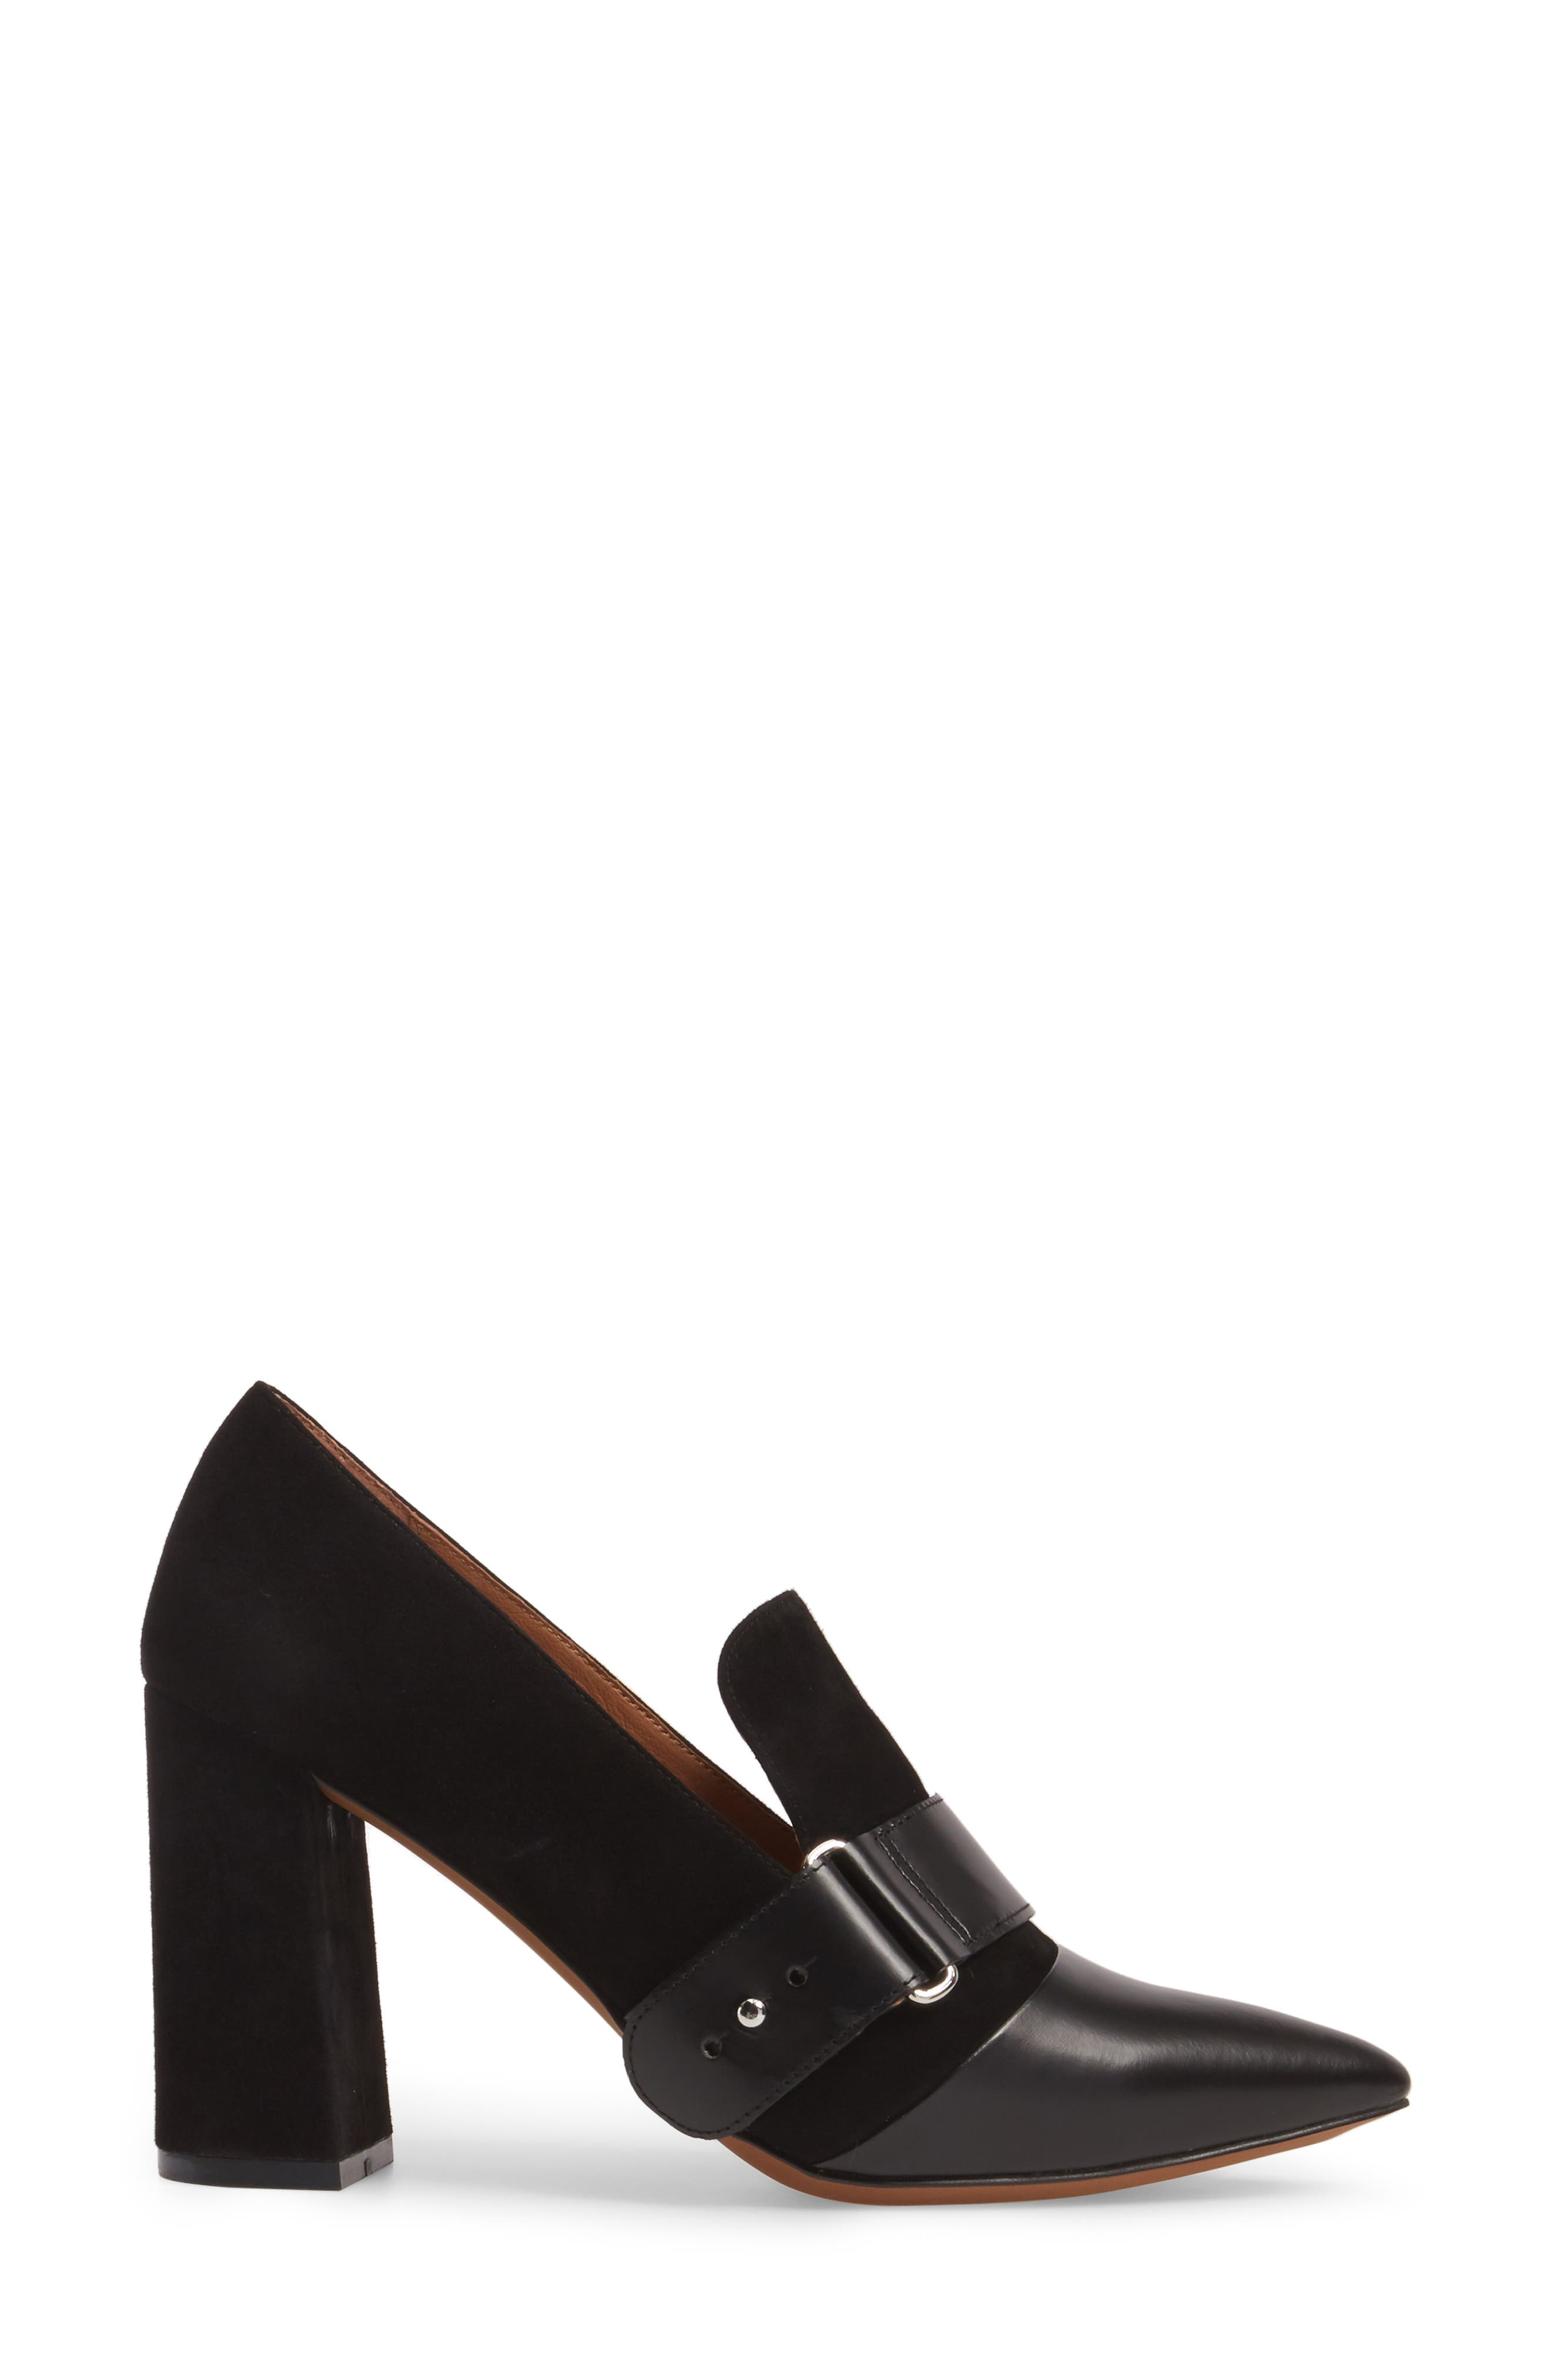 Casidy Buckle Pump,                             Alternate thumbnail 3, color,                             001